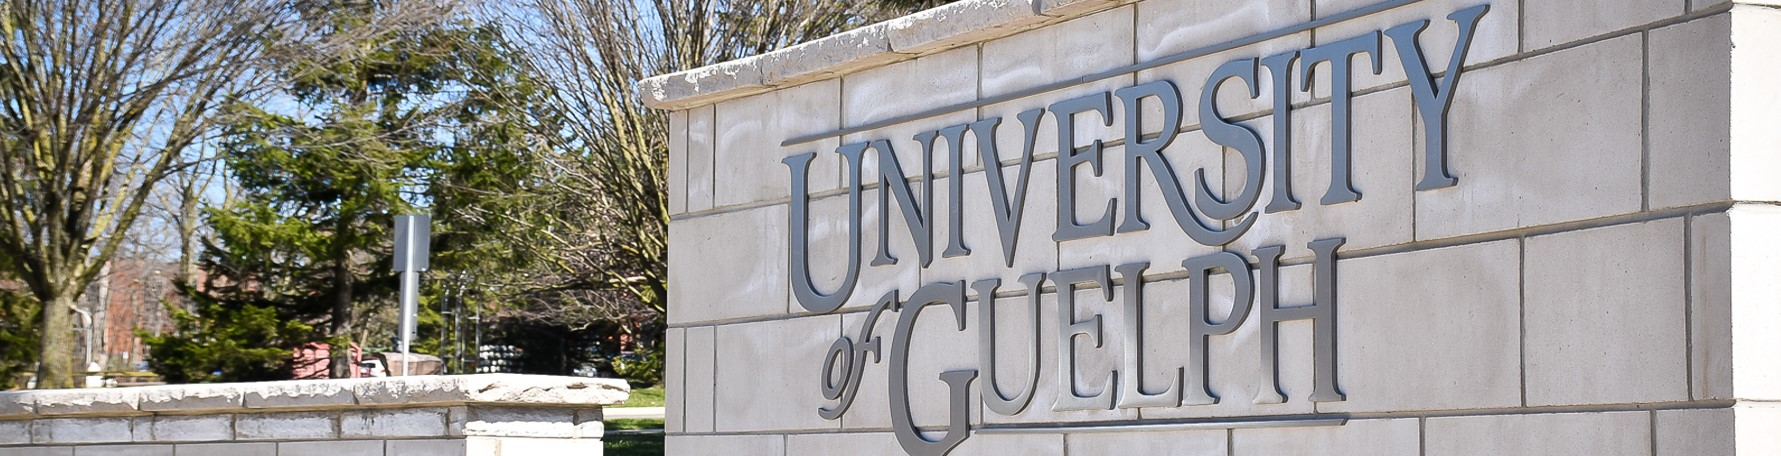 The University of Guelph front entrance sign